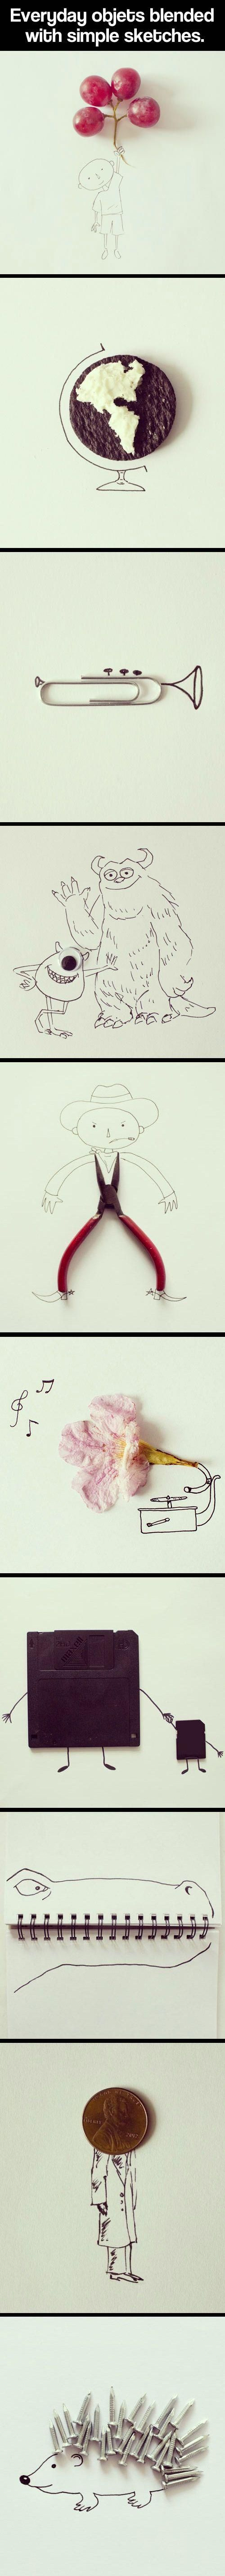 EVERYDAY OBJECTS BLENDED WITH SIMPLE SKETCHES.